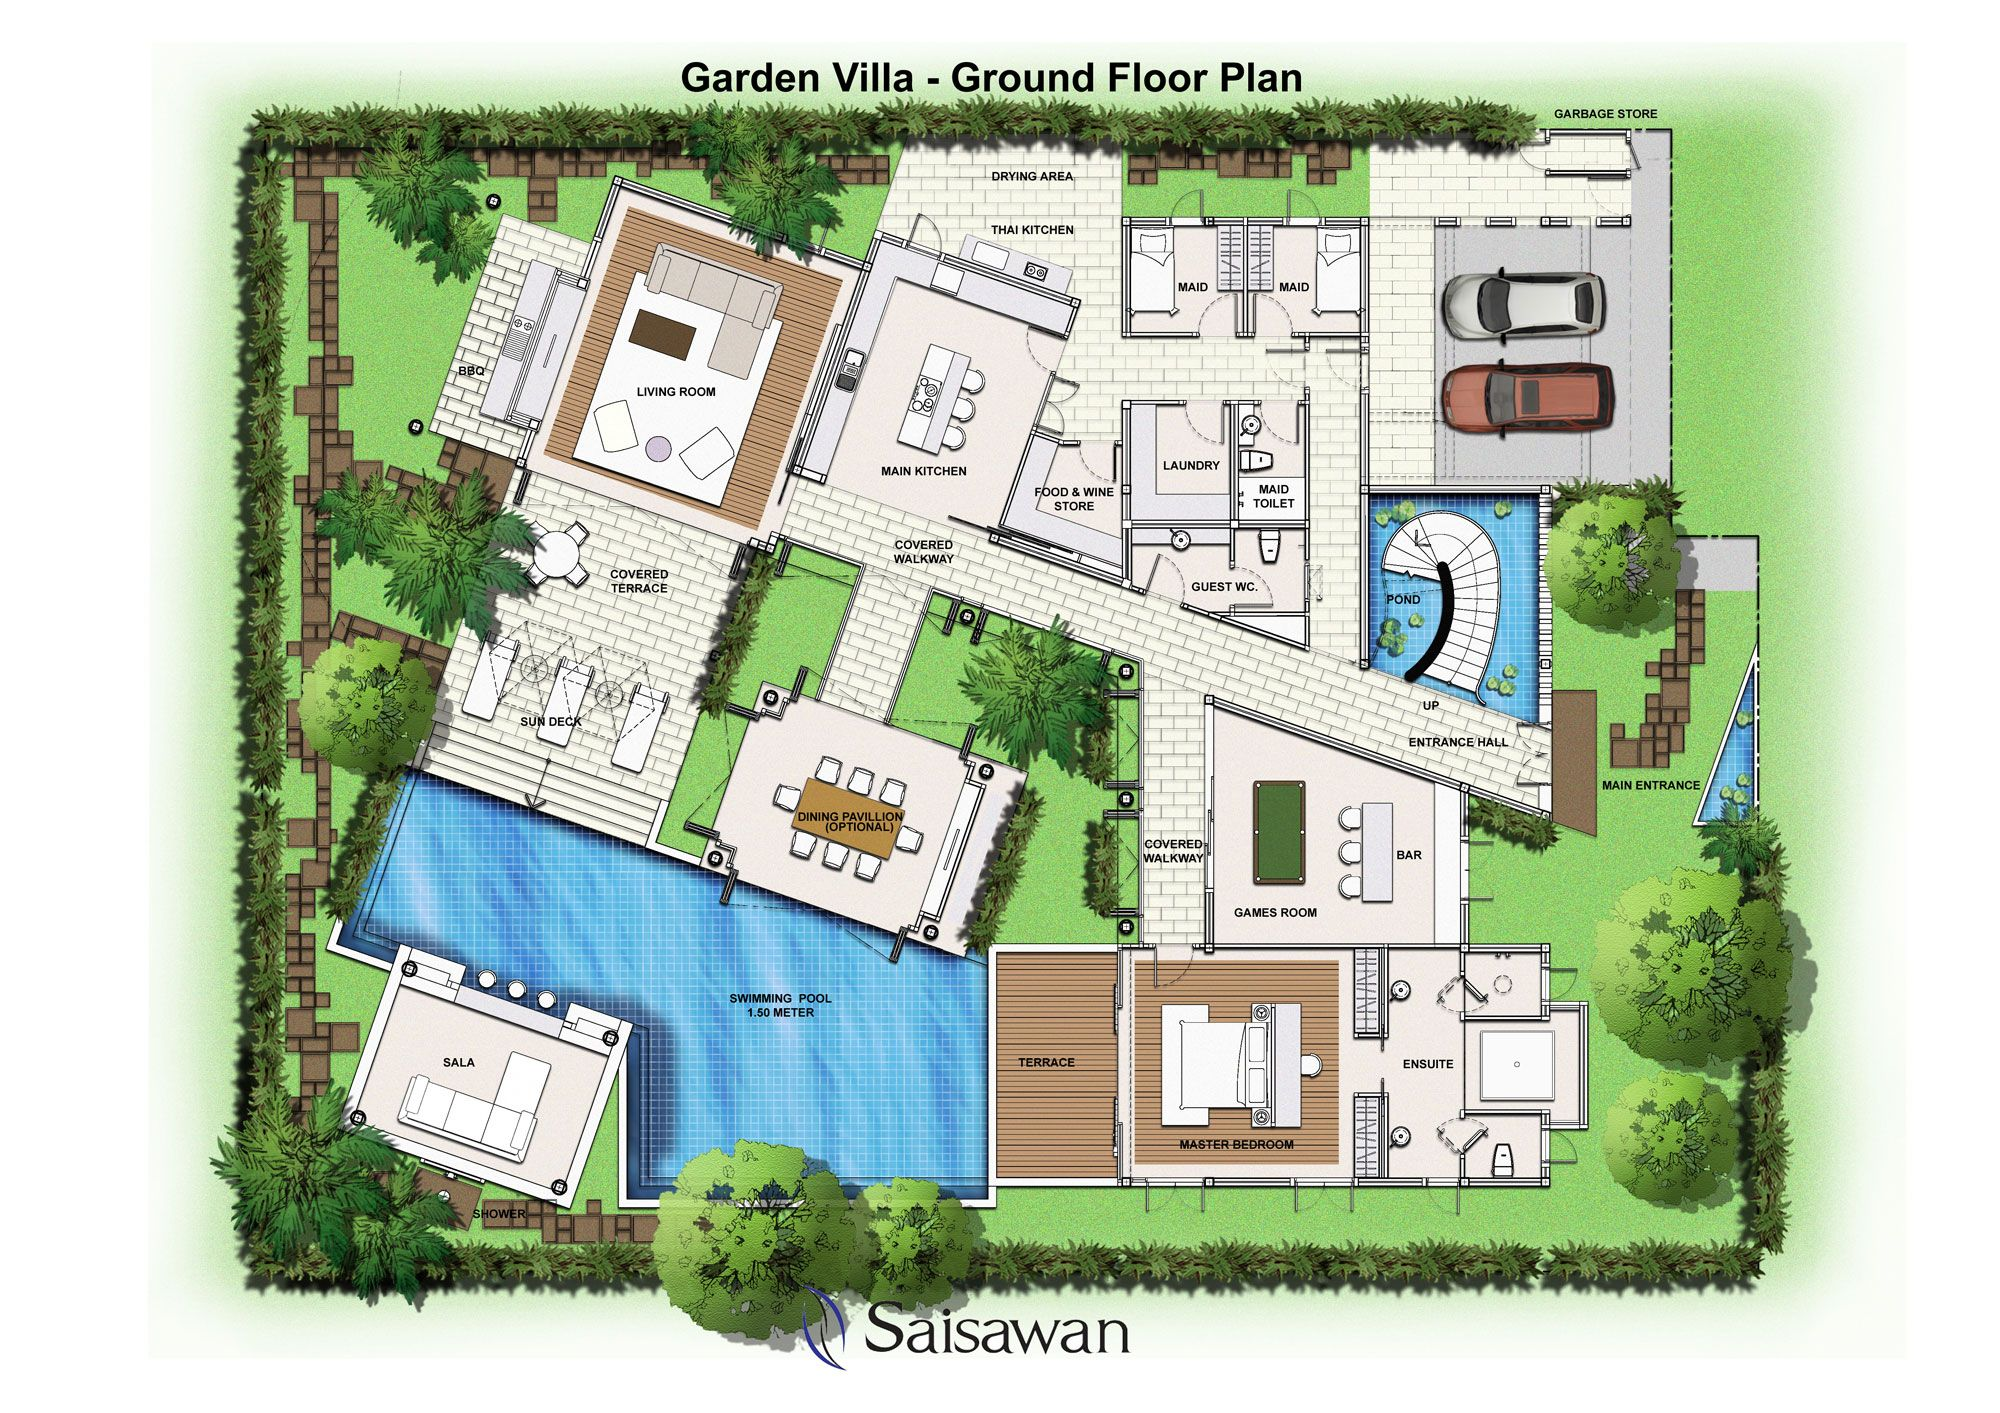 Saisawan garden villas ground floor plan house plans for Landscape blueprints